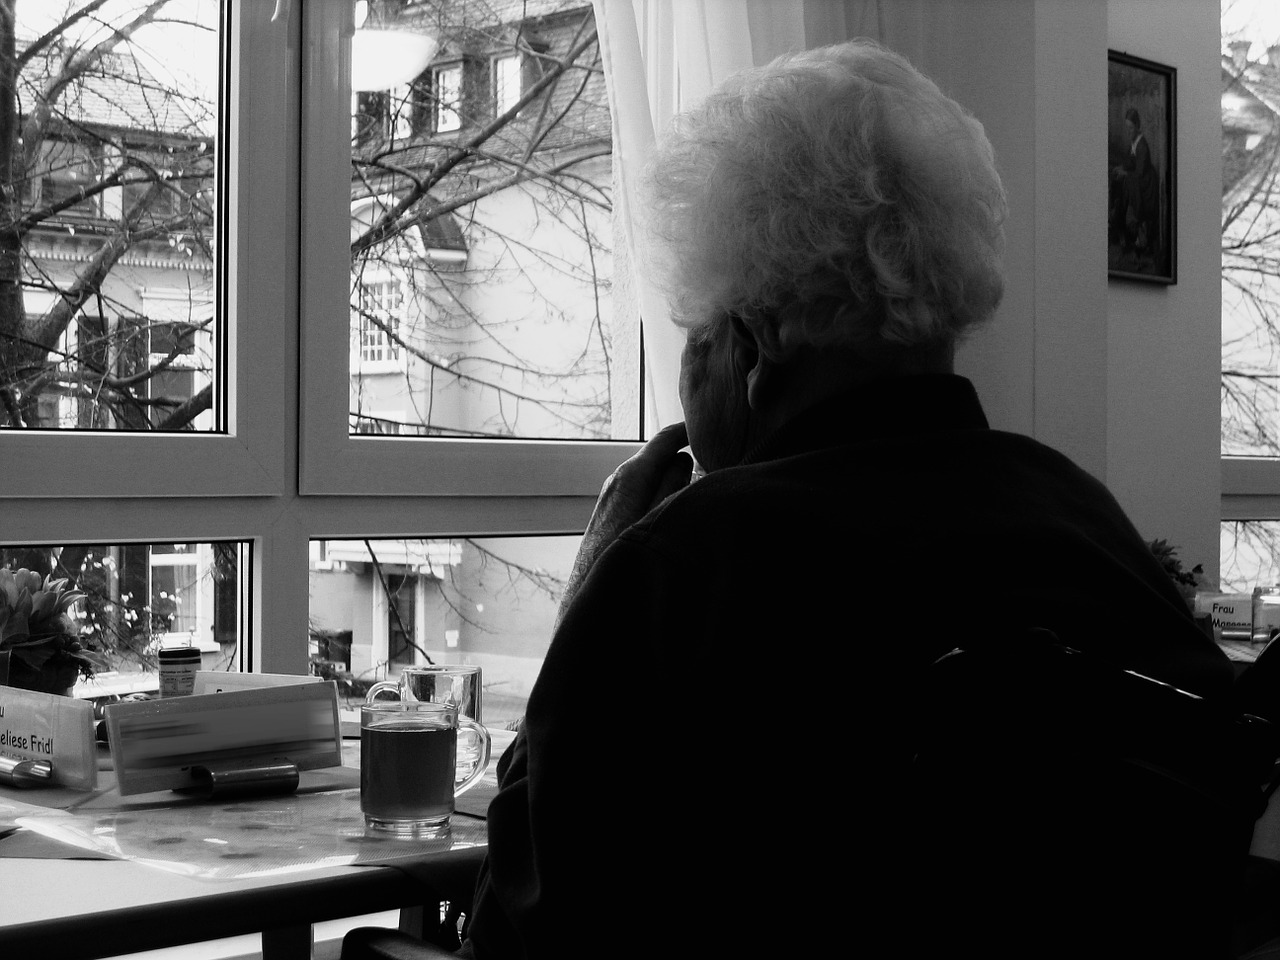 Lonely older woman looking out a window